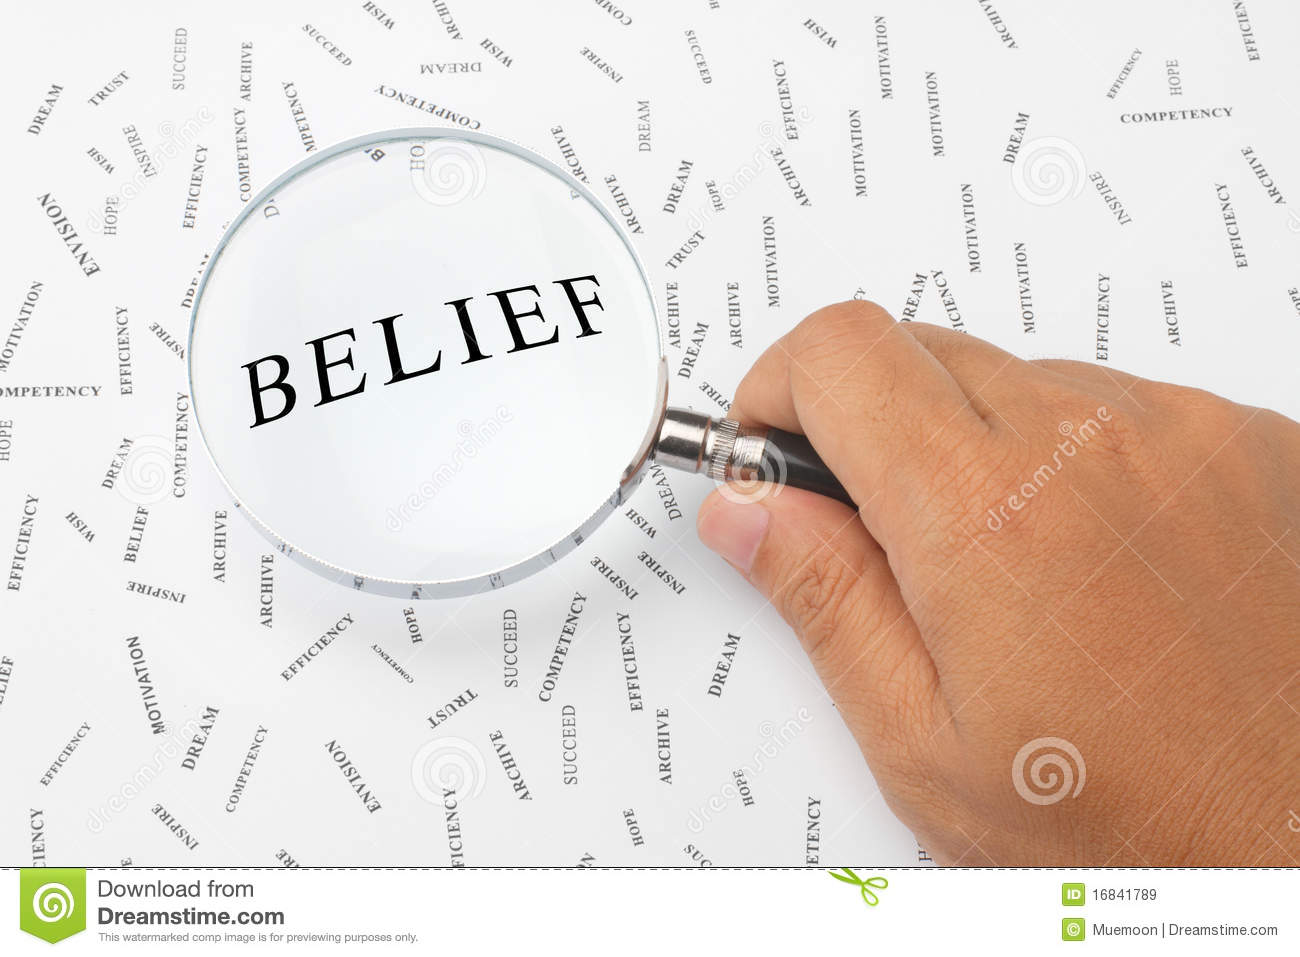 The word Belief is magnified